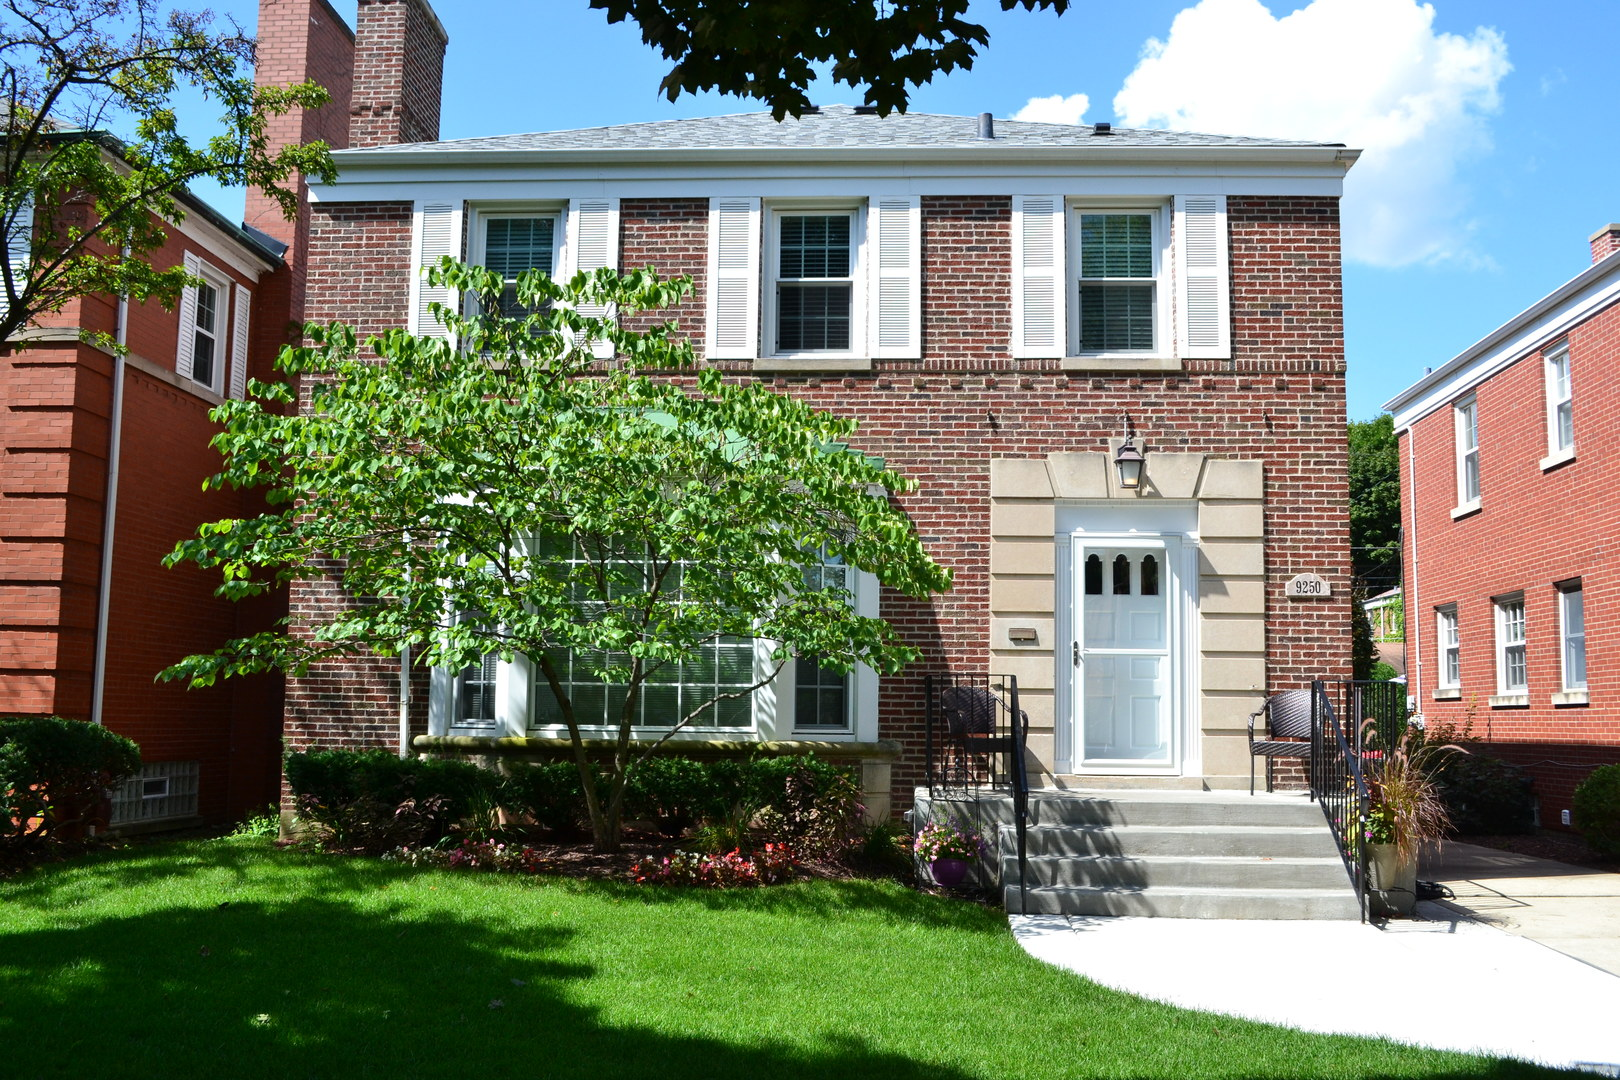 Photo of 9250 South Bell Avenue CHICAGO IL 60643